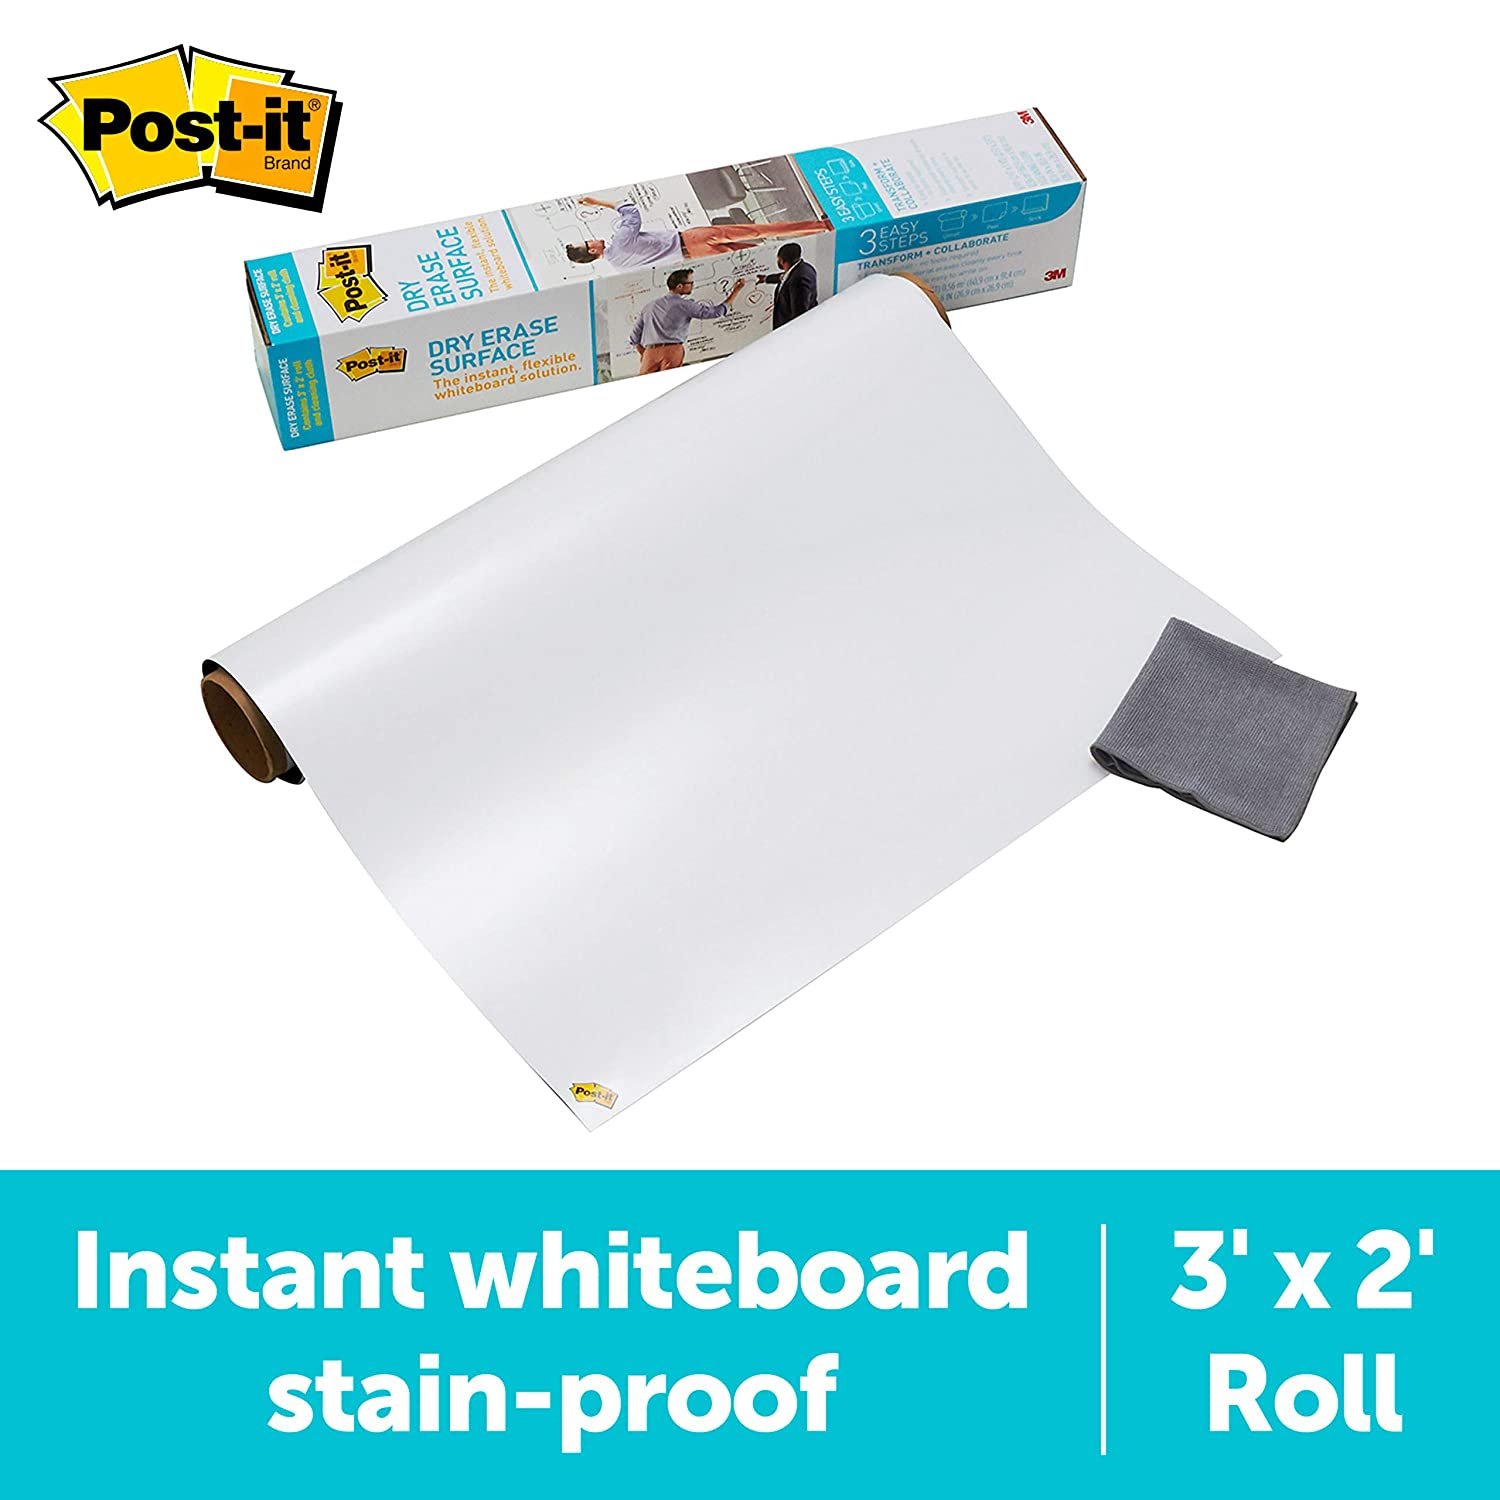 Post-it Dry Erase Surface (3 ft x 2 ft) - Great for Tables, Desks and Other Surfaces